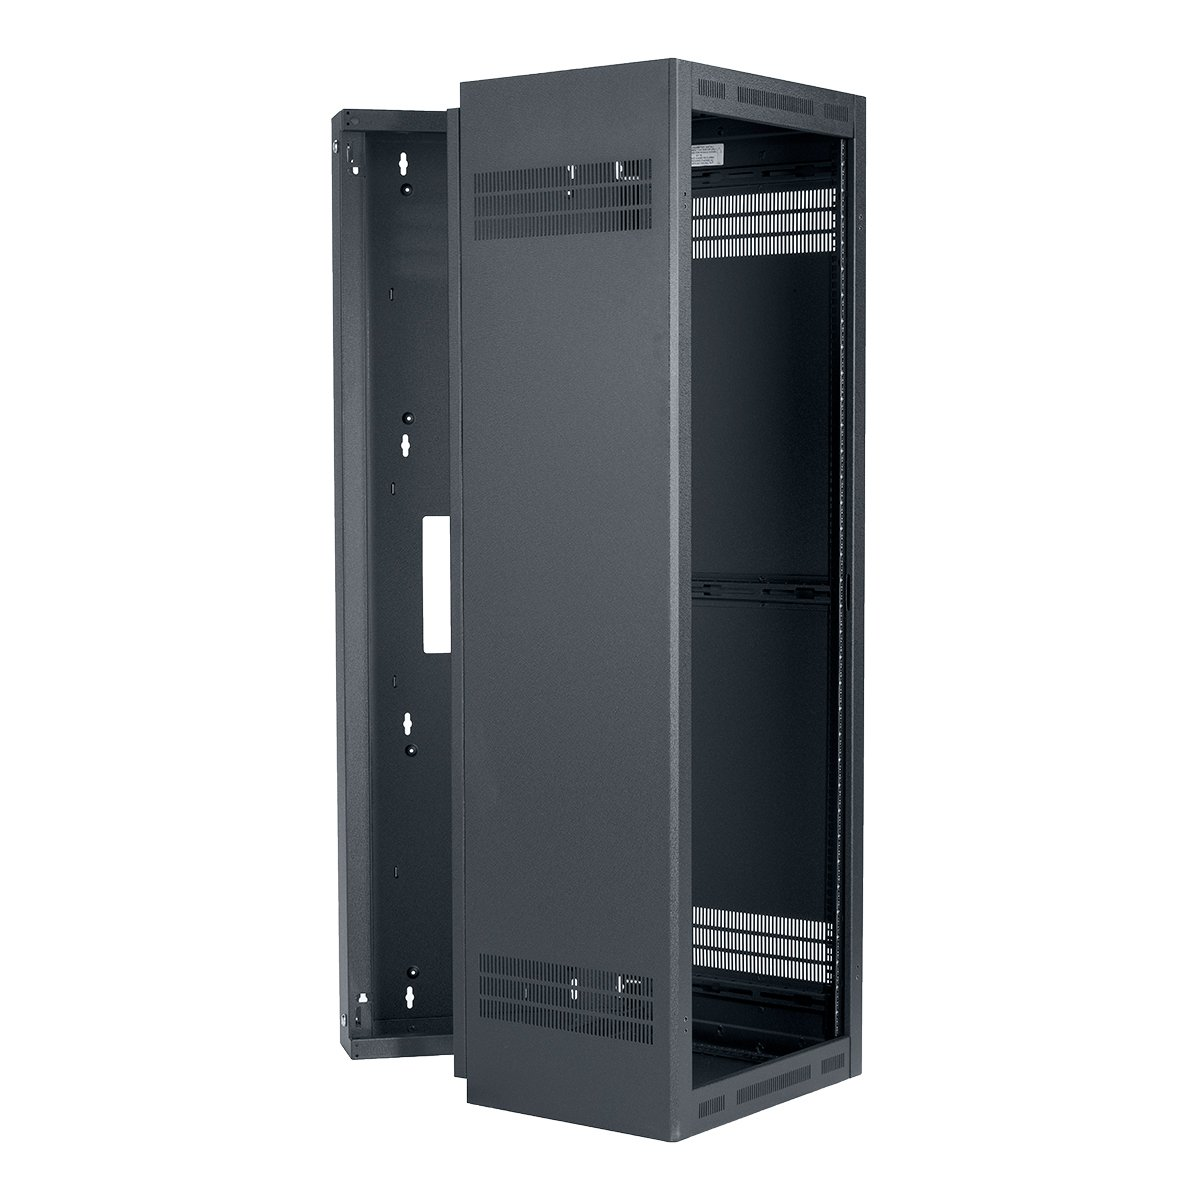 "Lowell LWR-3523  35 RU, 23"" Deep Wall Mount Rack LWR-3523"